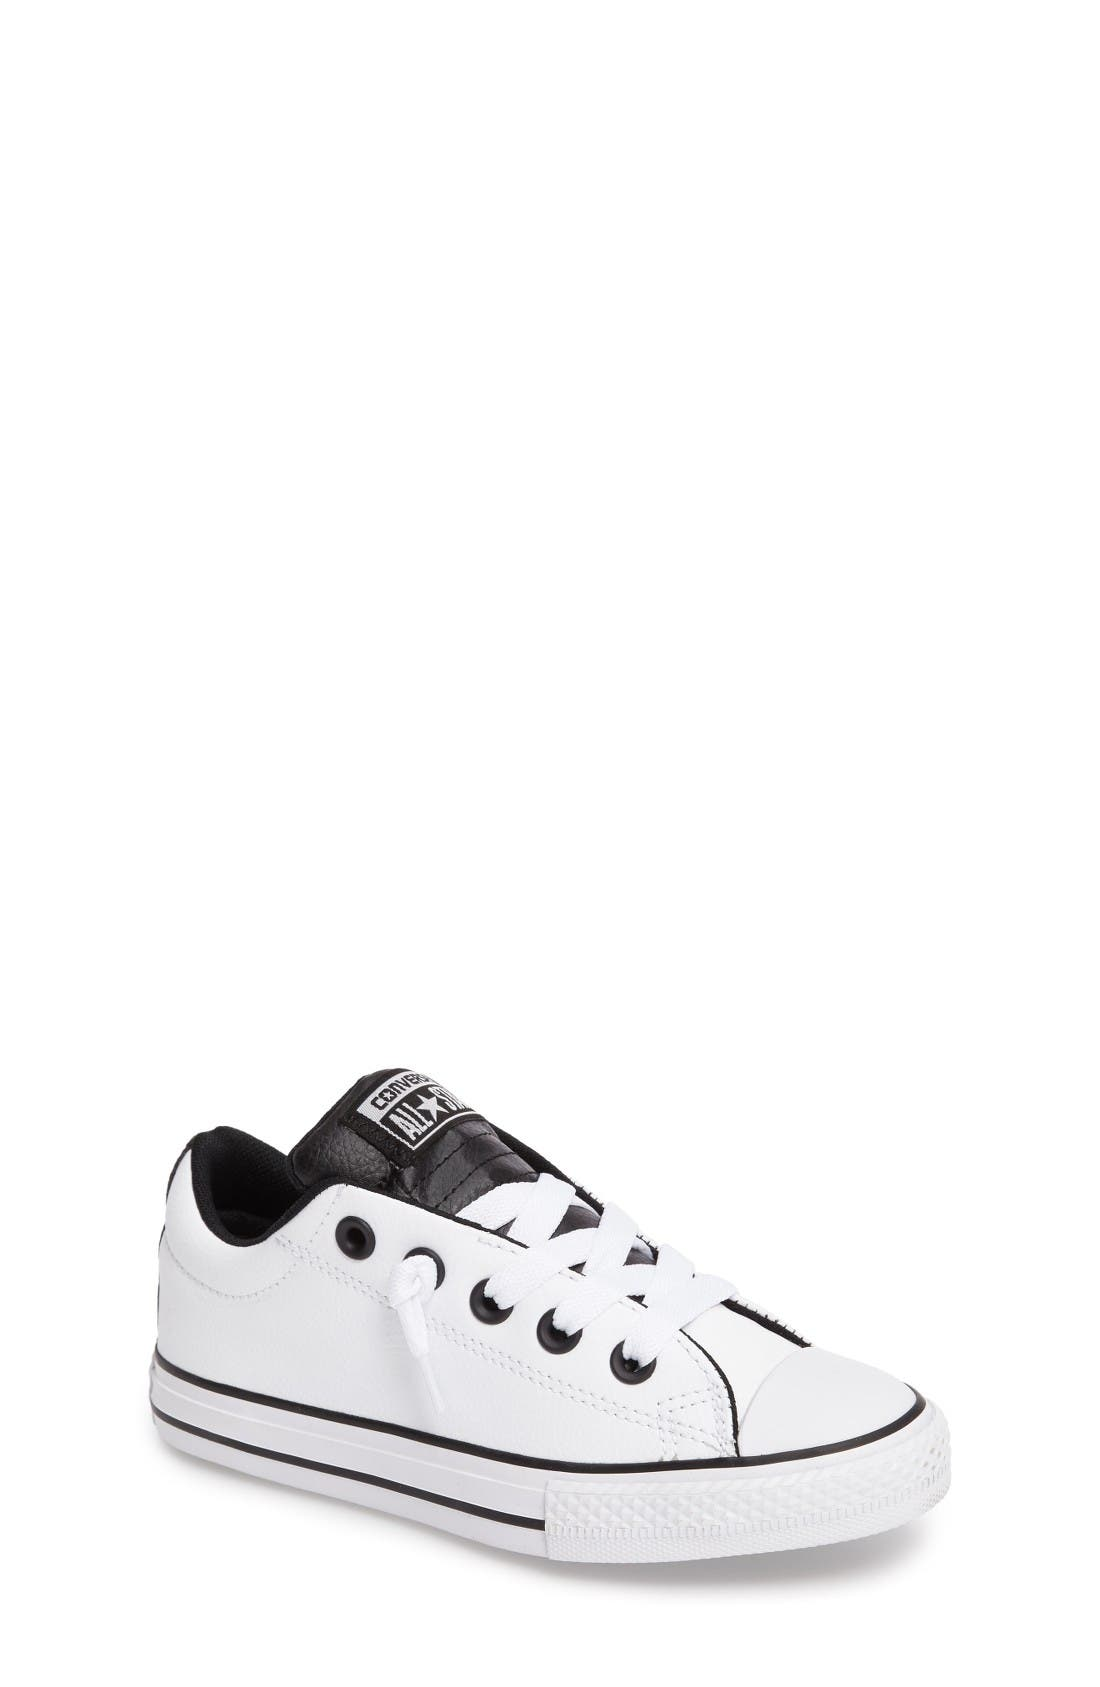 CONVERSE Chuck Taylor<sup>®</sup> All Star<sup>®</sup> Street Sneaker